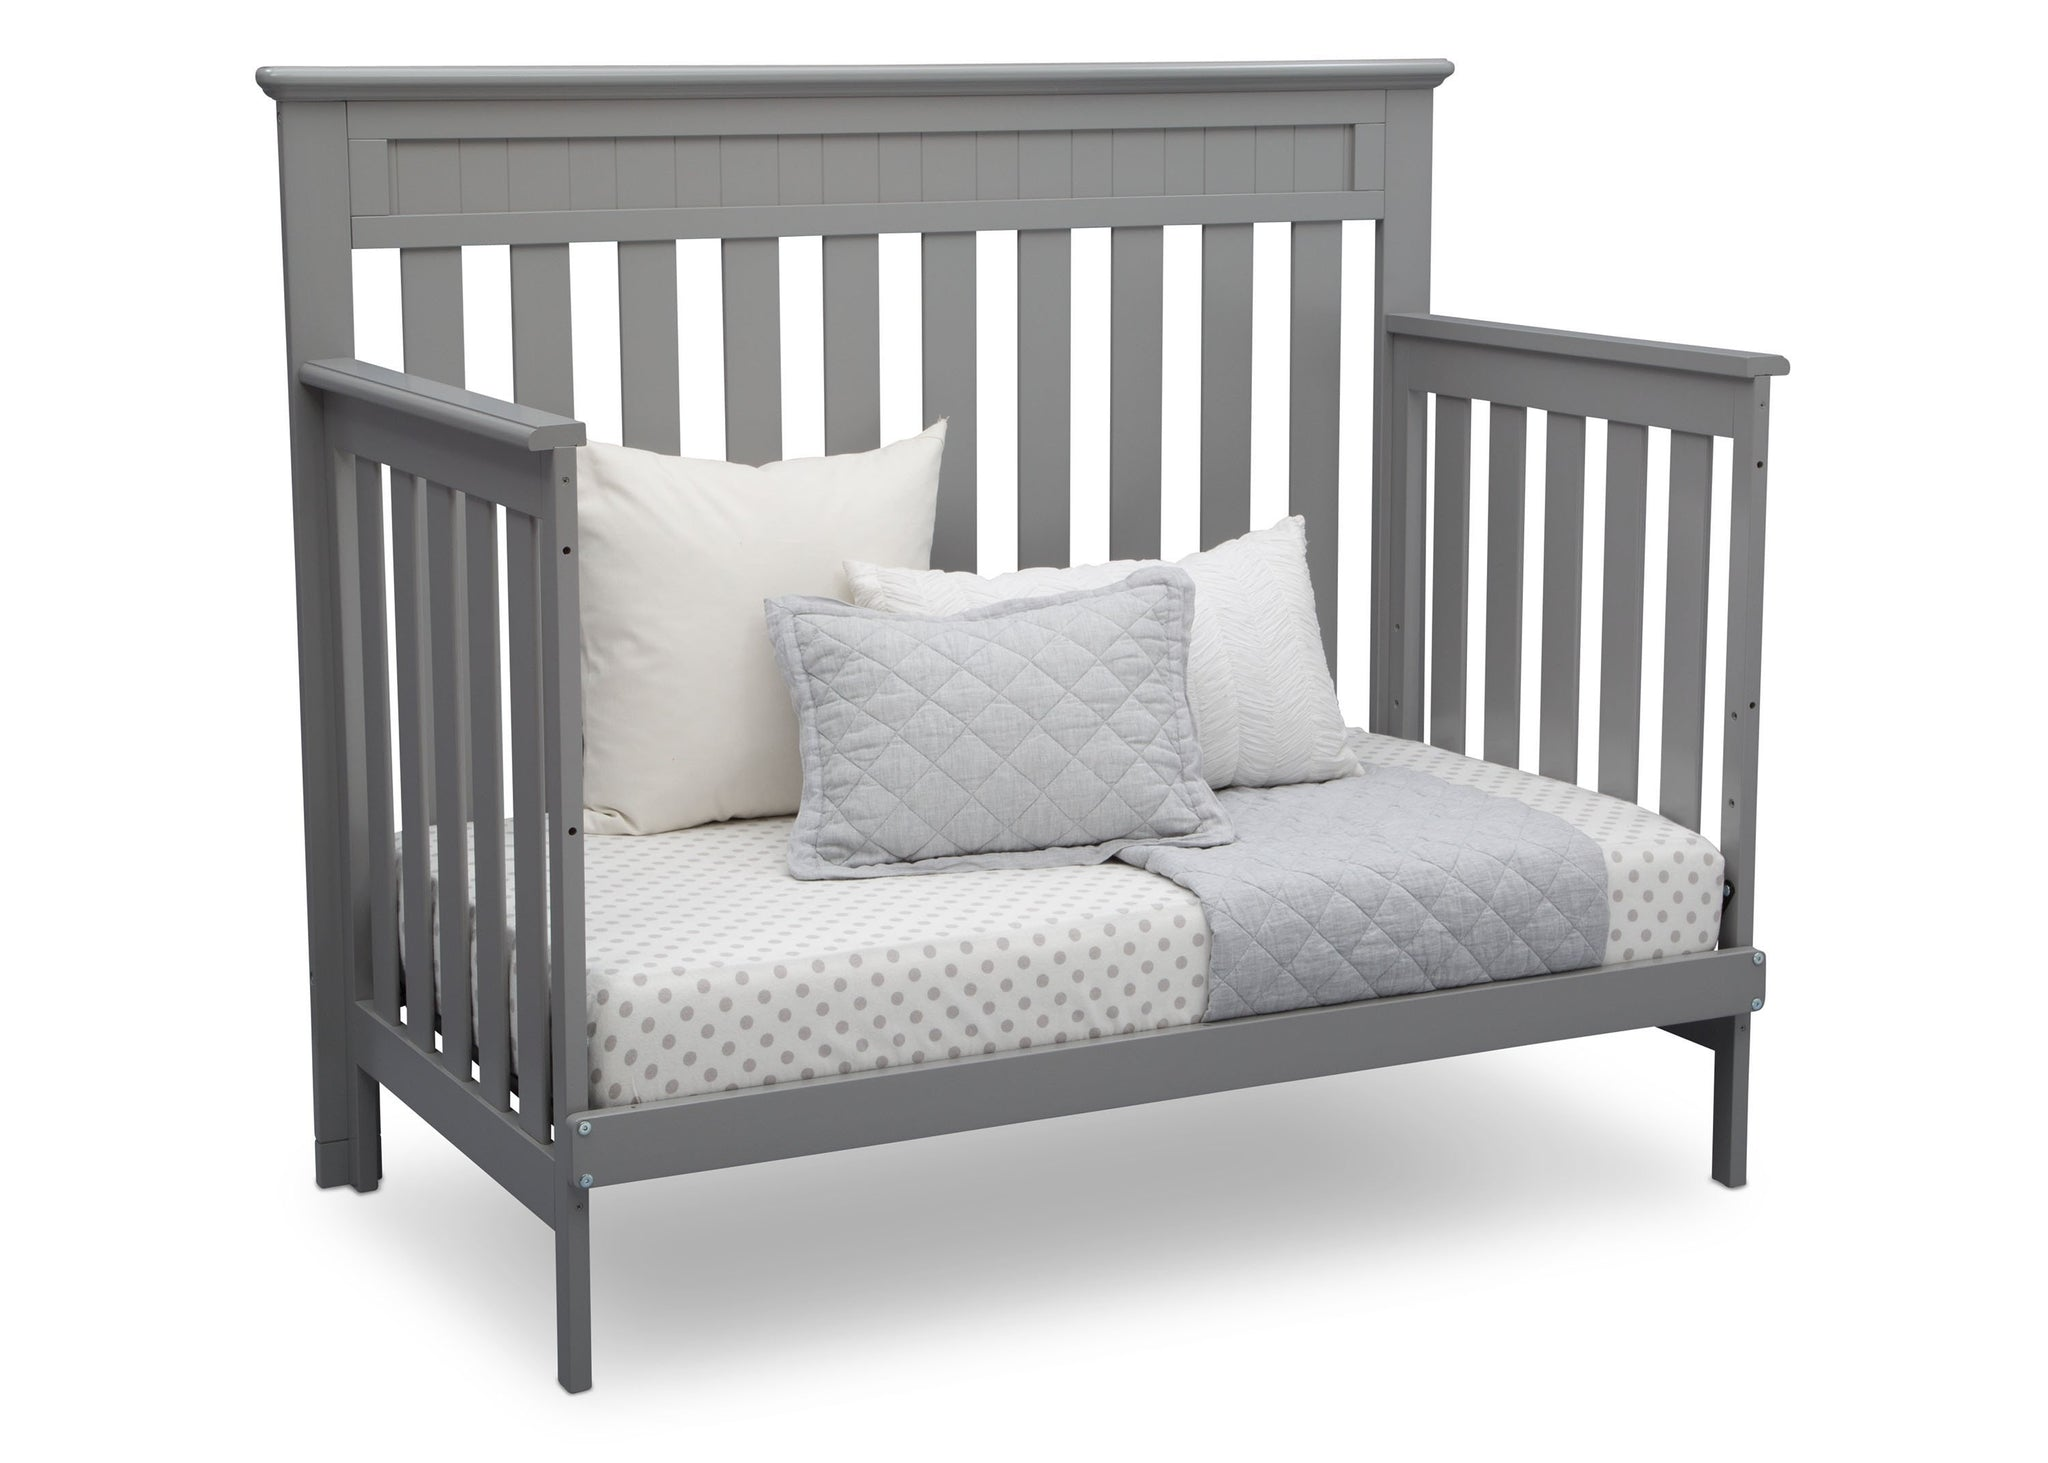 Delta Children Grey (026) Chalet 4-in-1 Crib, angled conversion to daybed, d4d